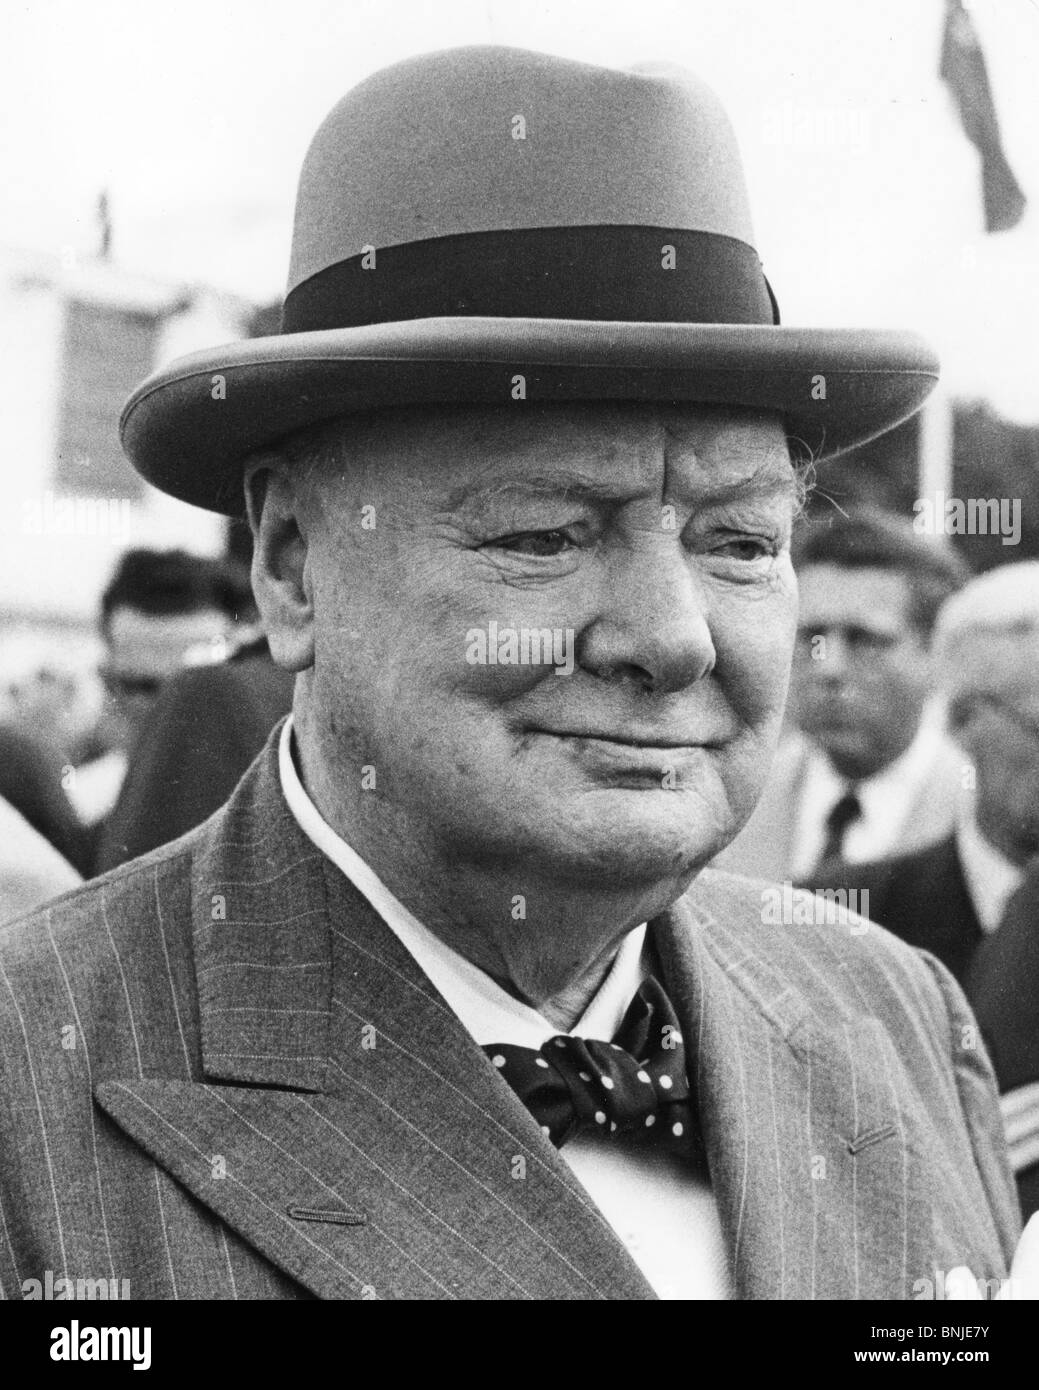 SIR WINSTON CHURCHILL on a visit to Ottawa in June 1954 - Stock Image